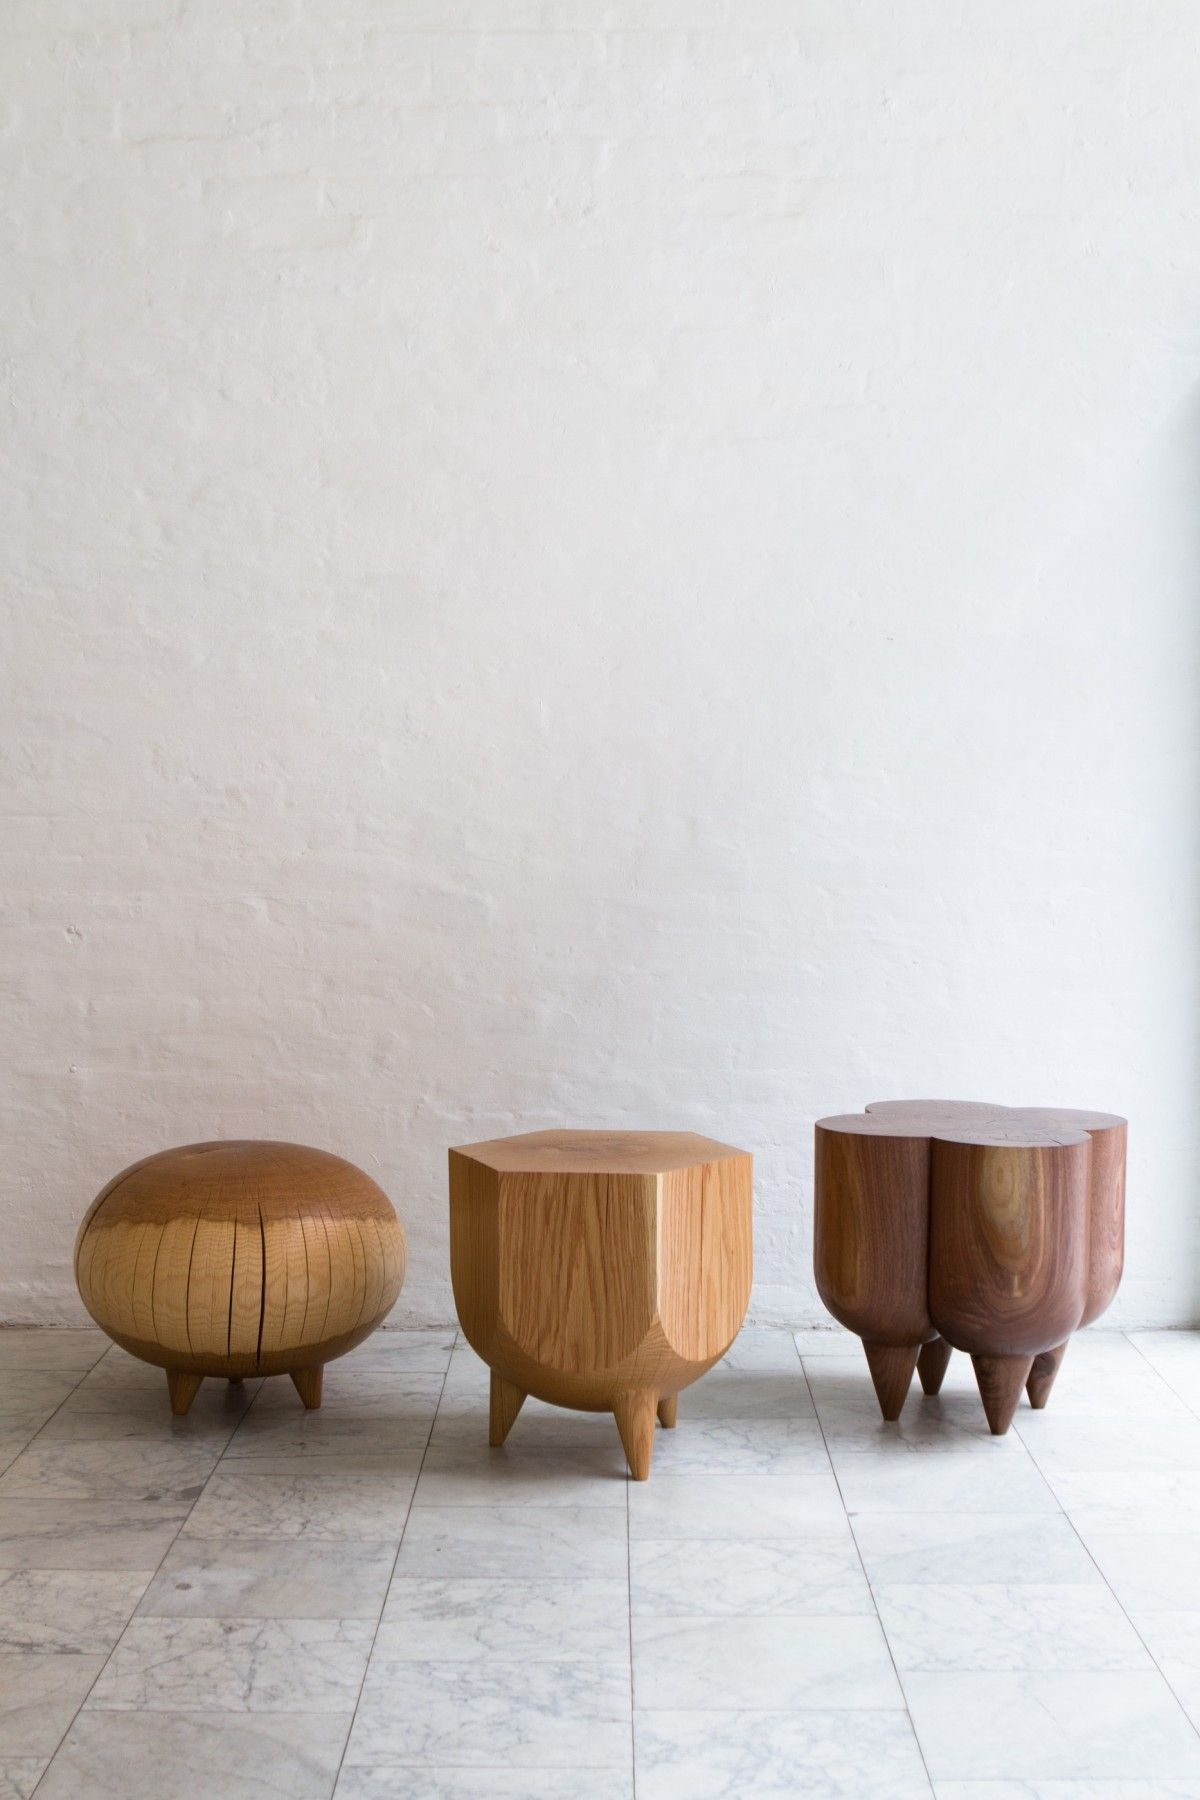 FURNITURE WOODEN KIERAN STUMP BDDW